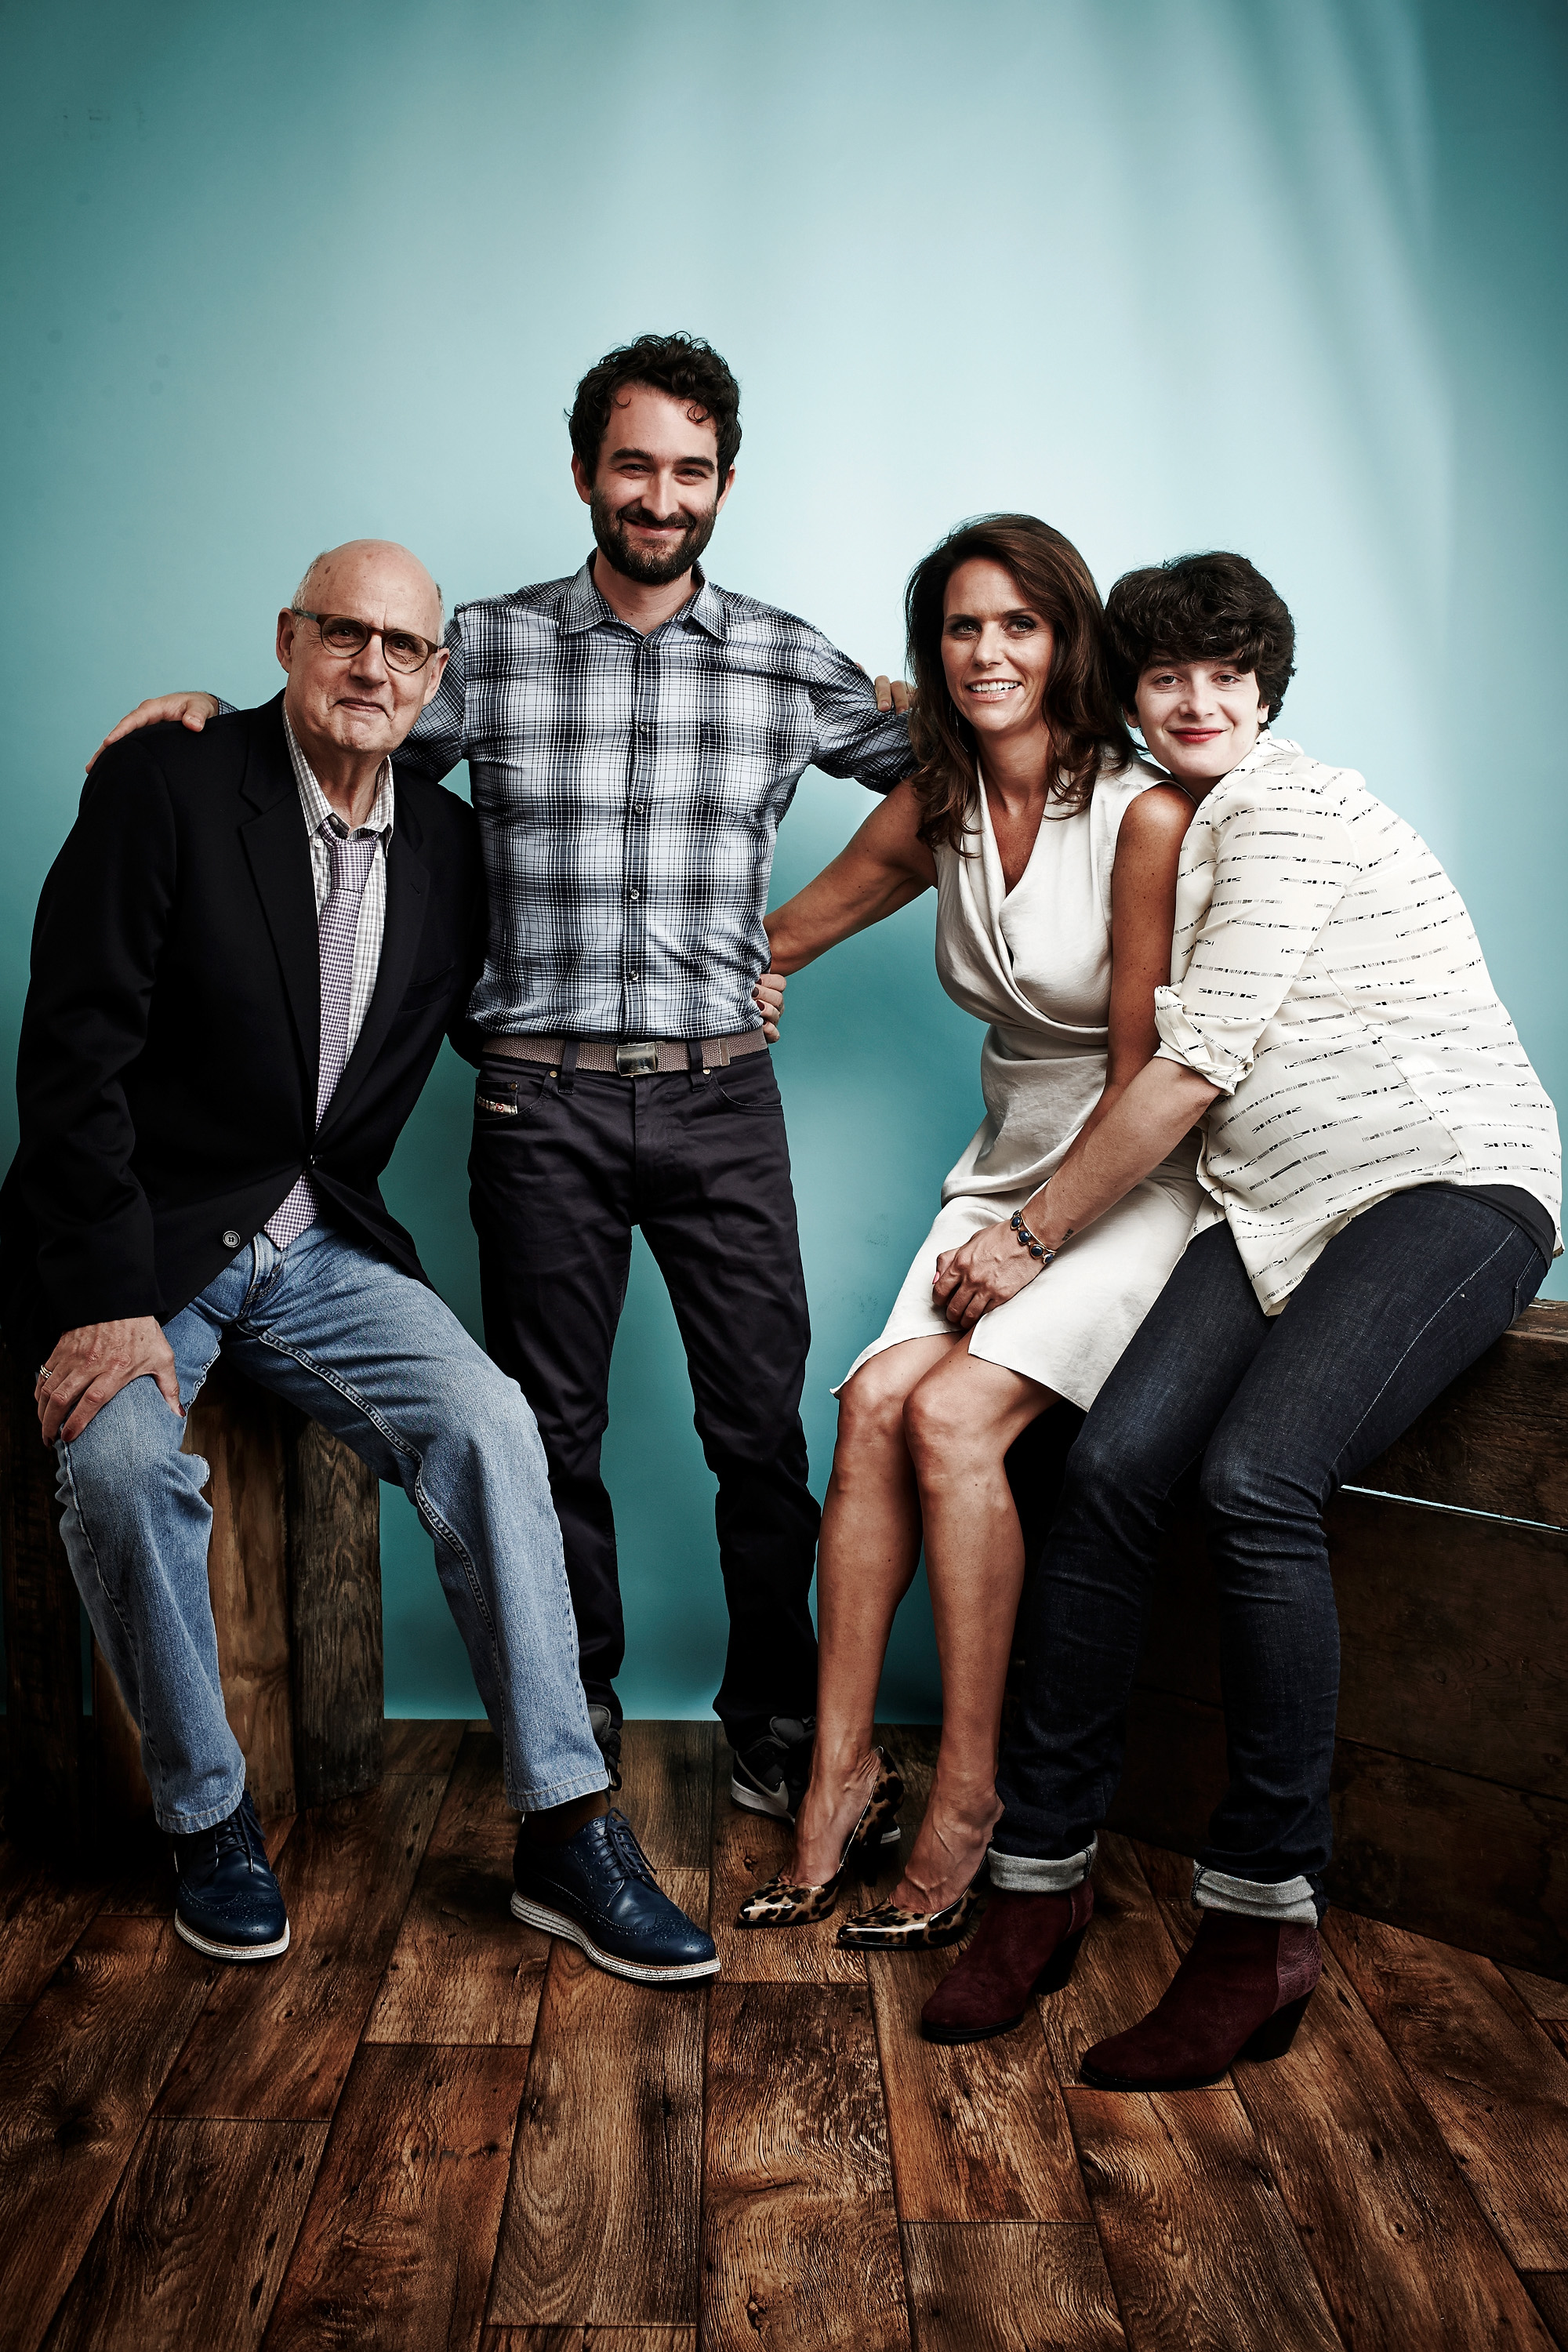 (L-R) Actors Jeffrey Tambor, Jay Duplass, Amy Landecker and Gaby Hoffmann from 'Transparent' pose for a portrait during 2014 Television Critics Association Summer Tour on July 12, 2014 in Beverly Hills, Calif.